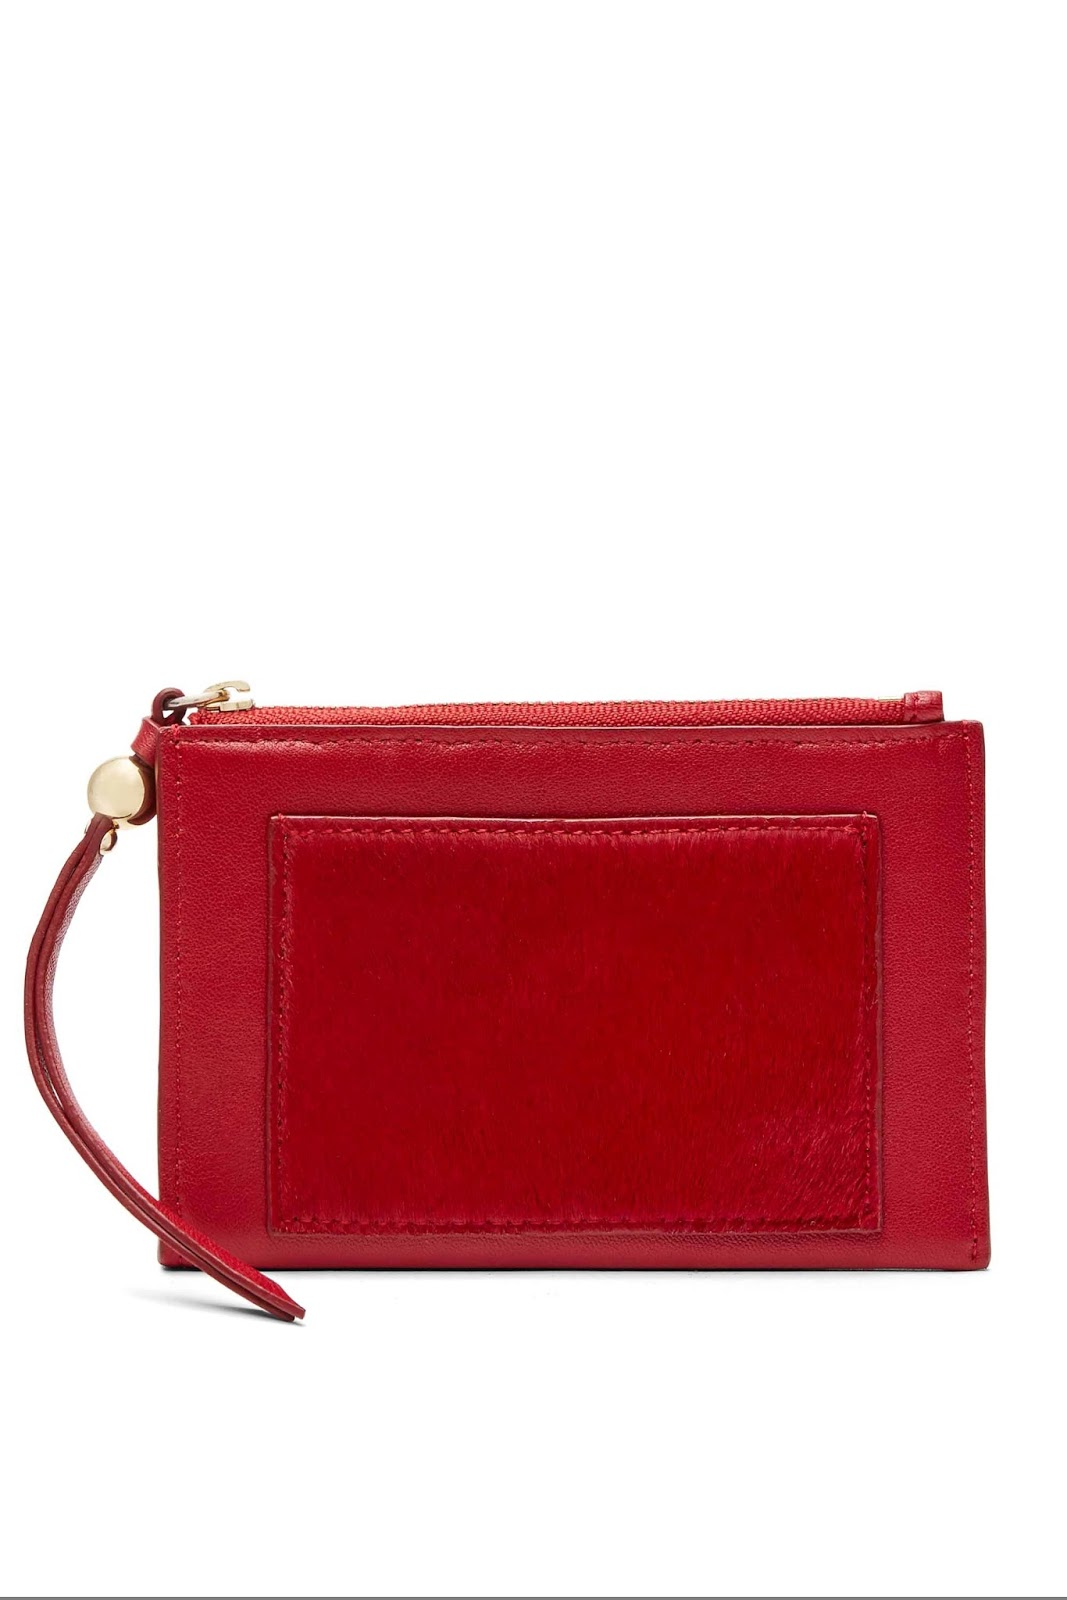 DVF's Bags for Chinese New Year!